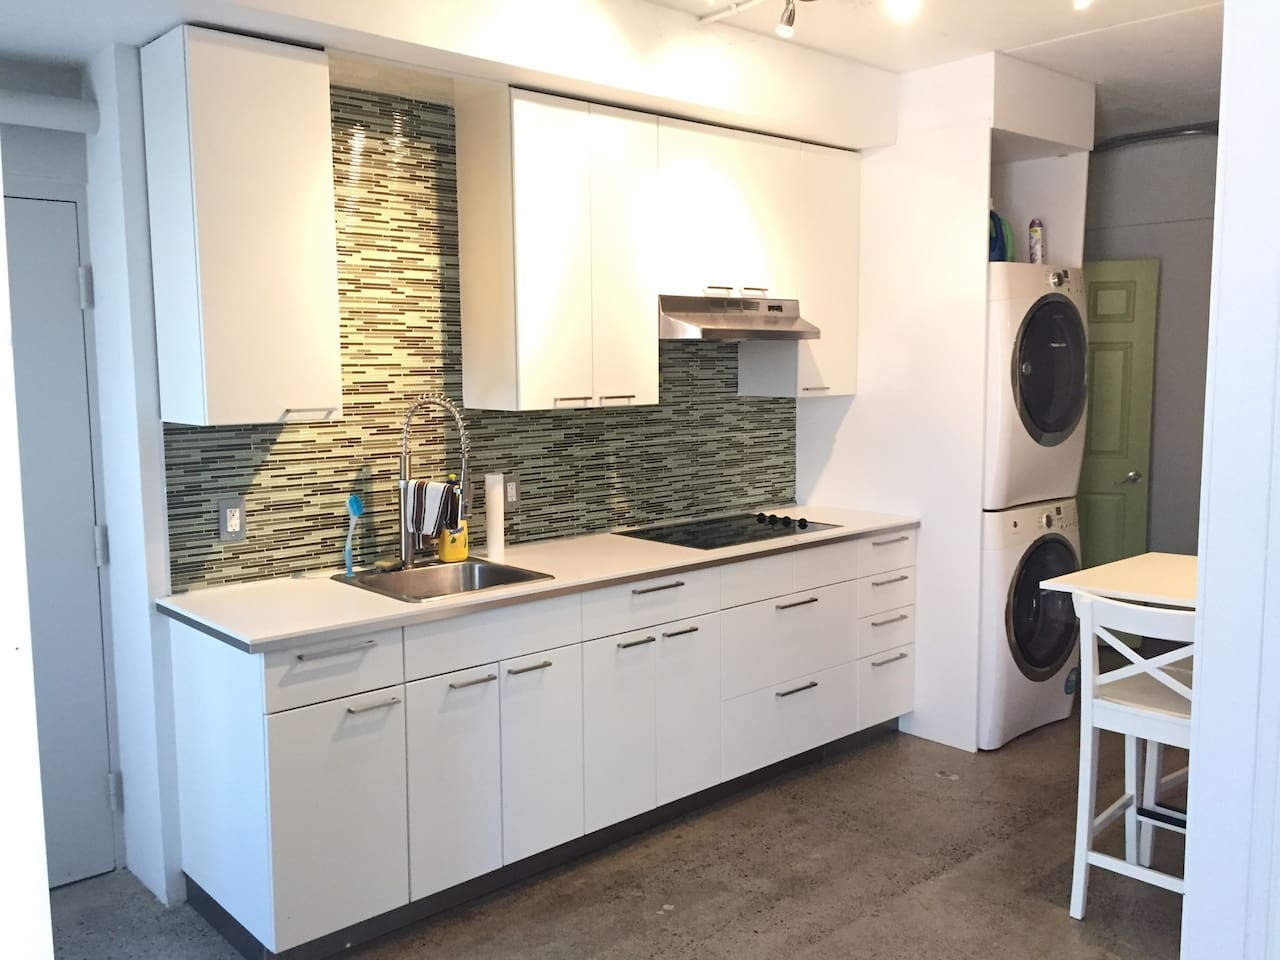 Clean and simple kitchen with full size laundry. Also cutlery and dishes if you prefer to eat in